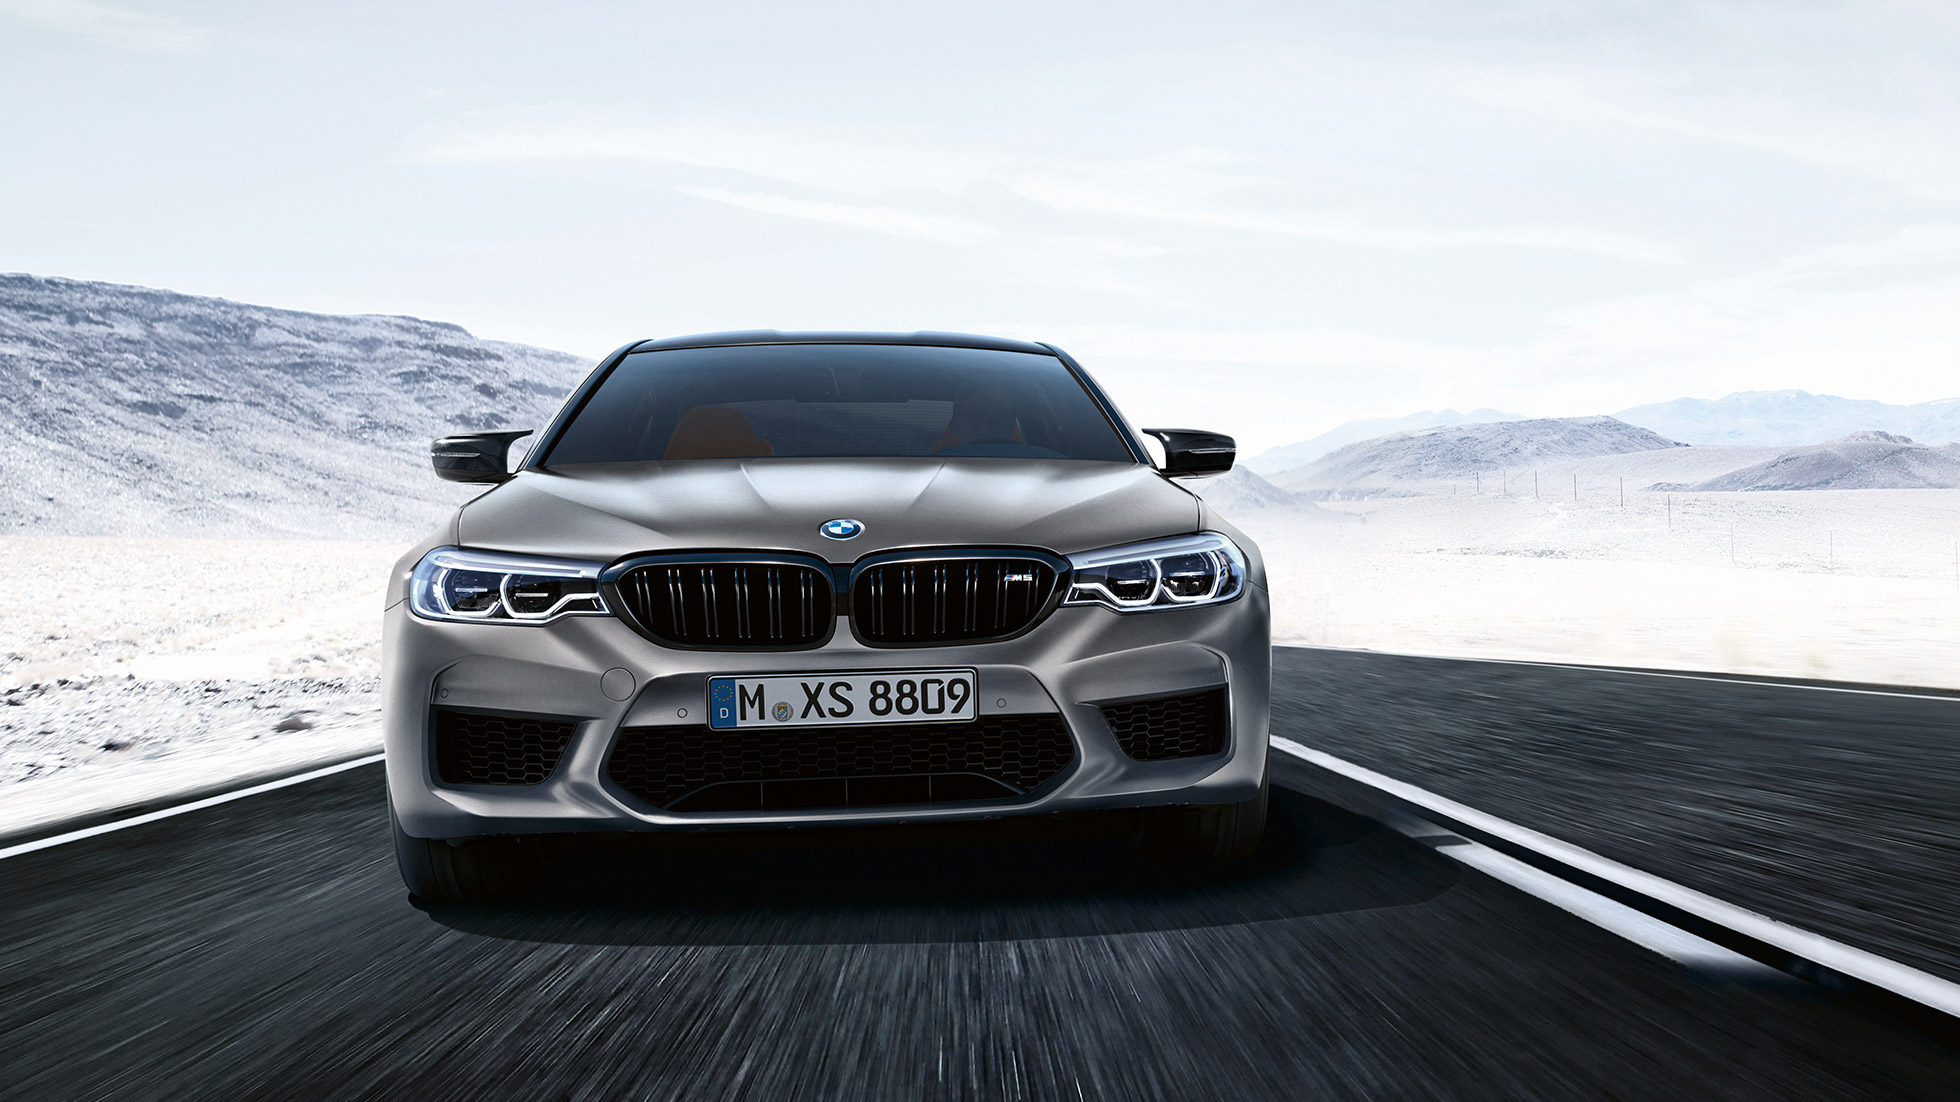 Toma frontal del diseño del BMW M5 Competition.